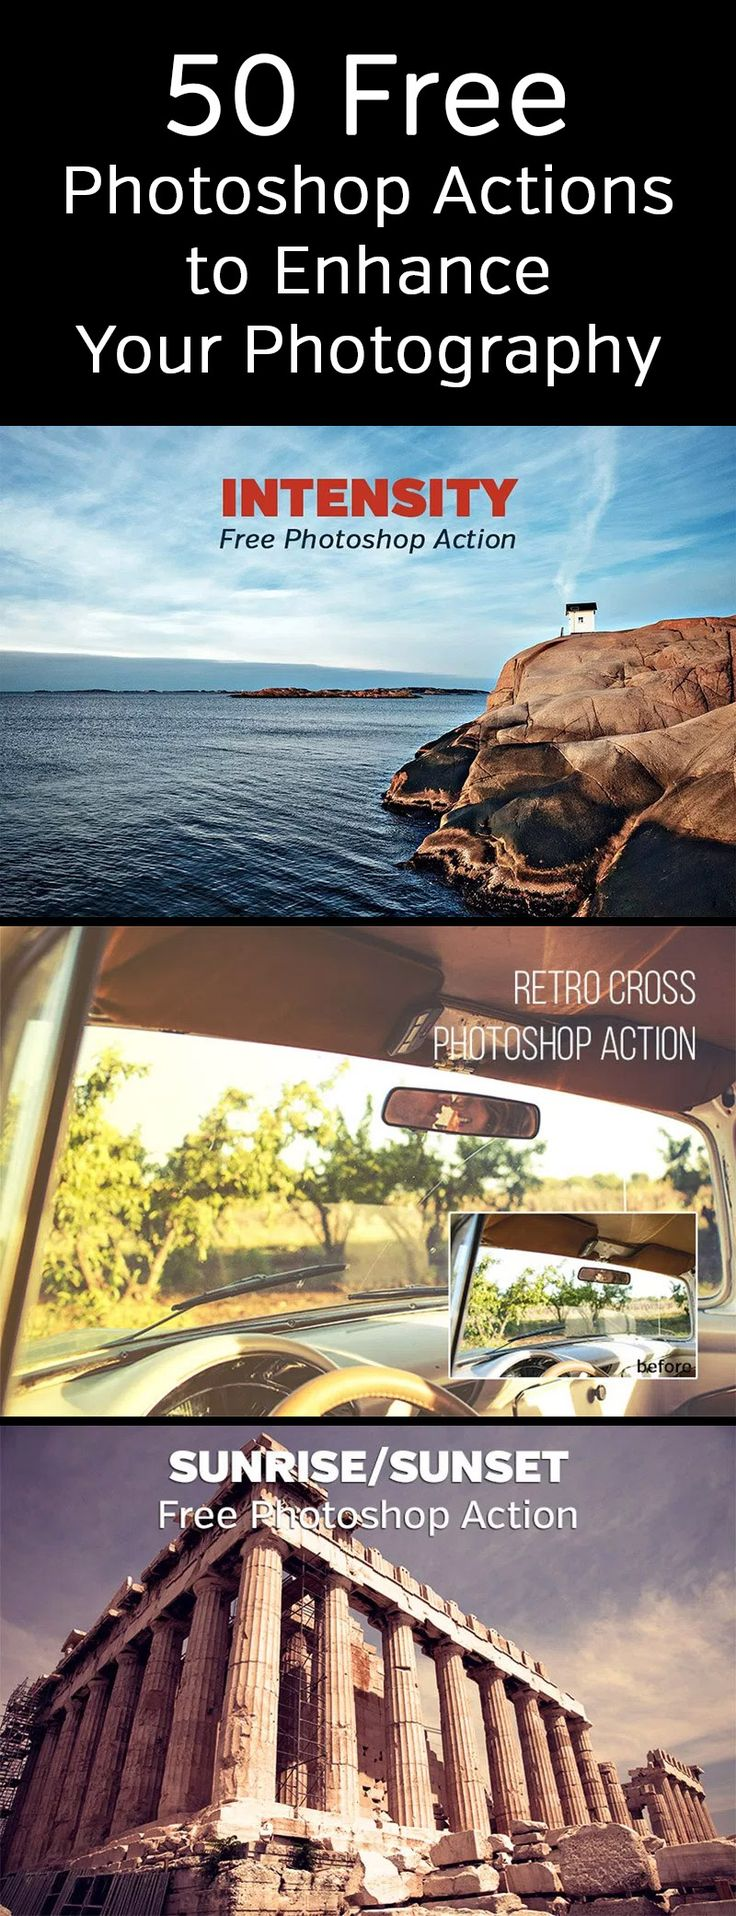 50 Free Photoshop Actions to Enhance Your Photography